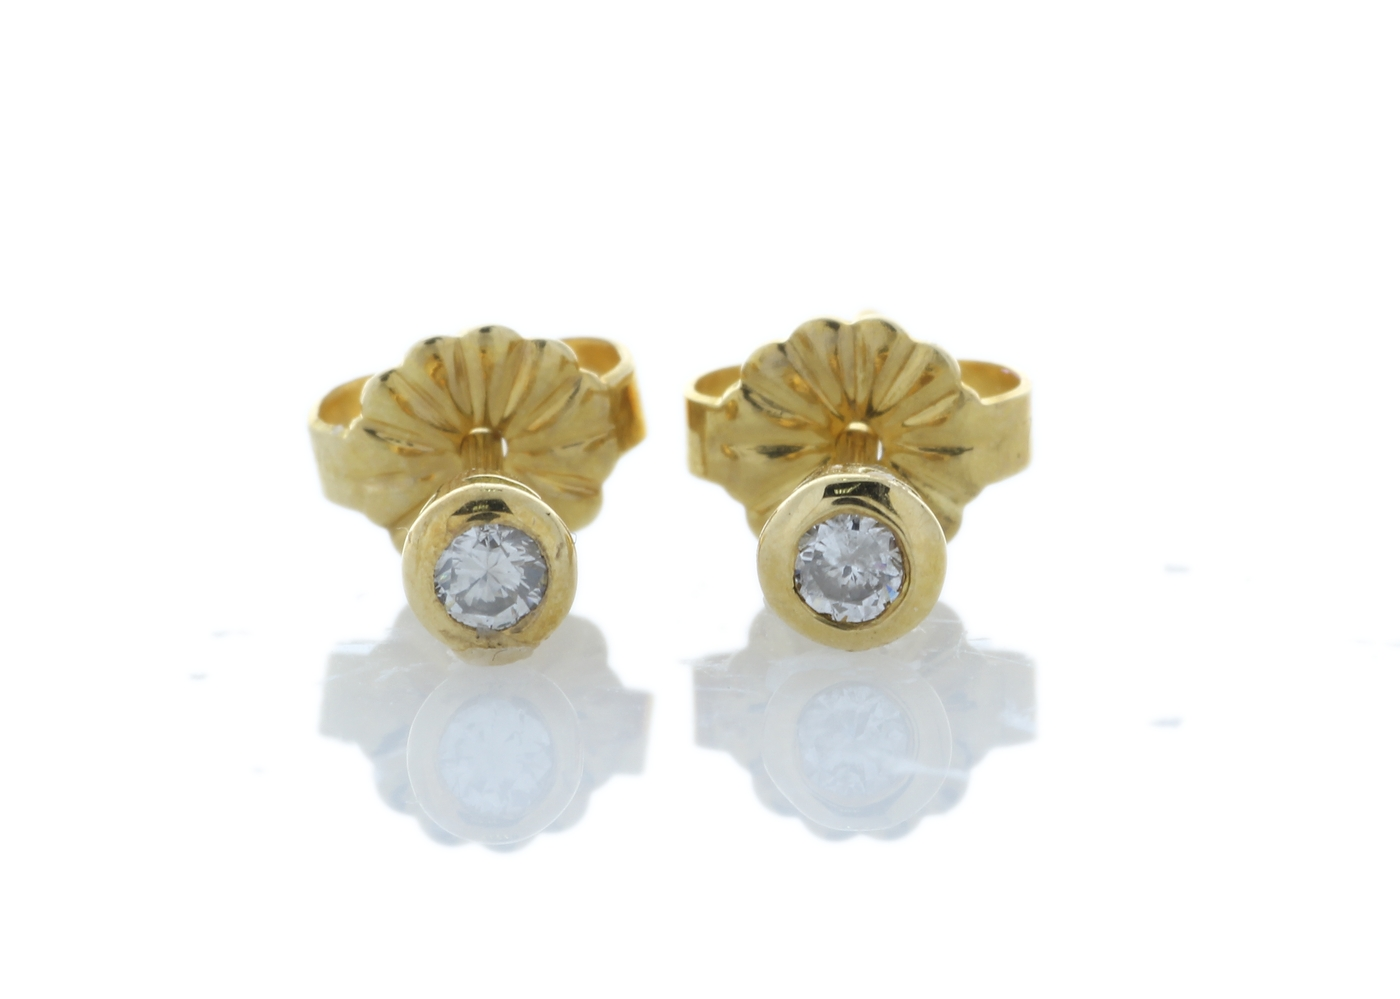 Lot 5 - 18ct Rub Over Set Diamond Earrings 0.10 Carats